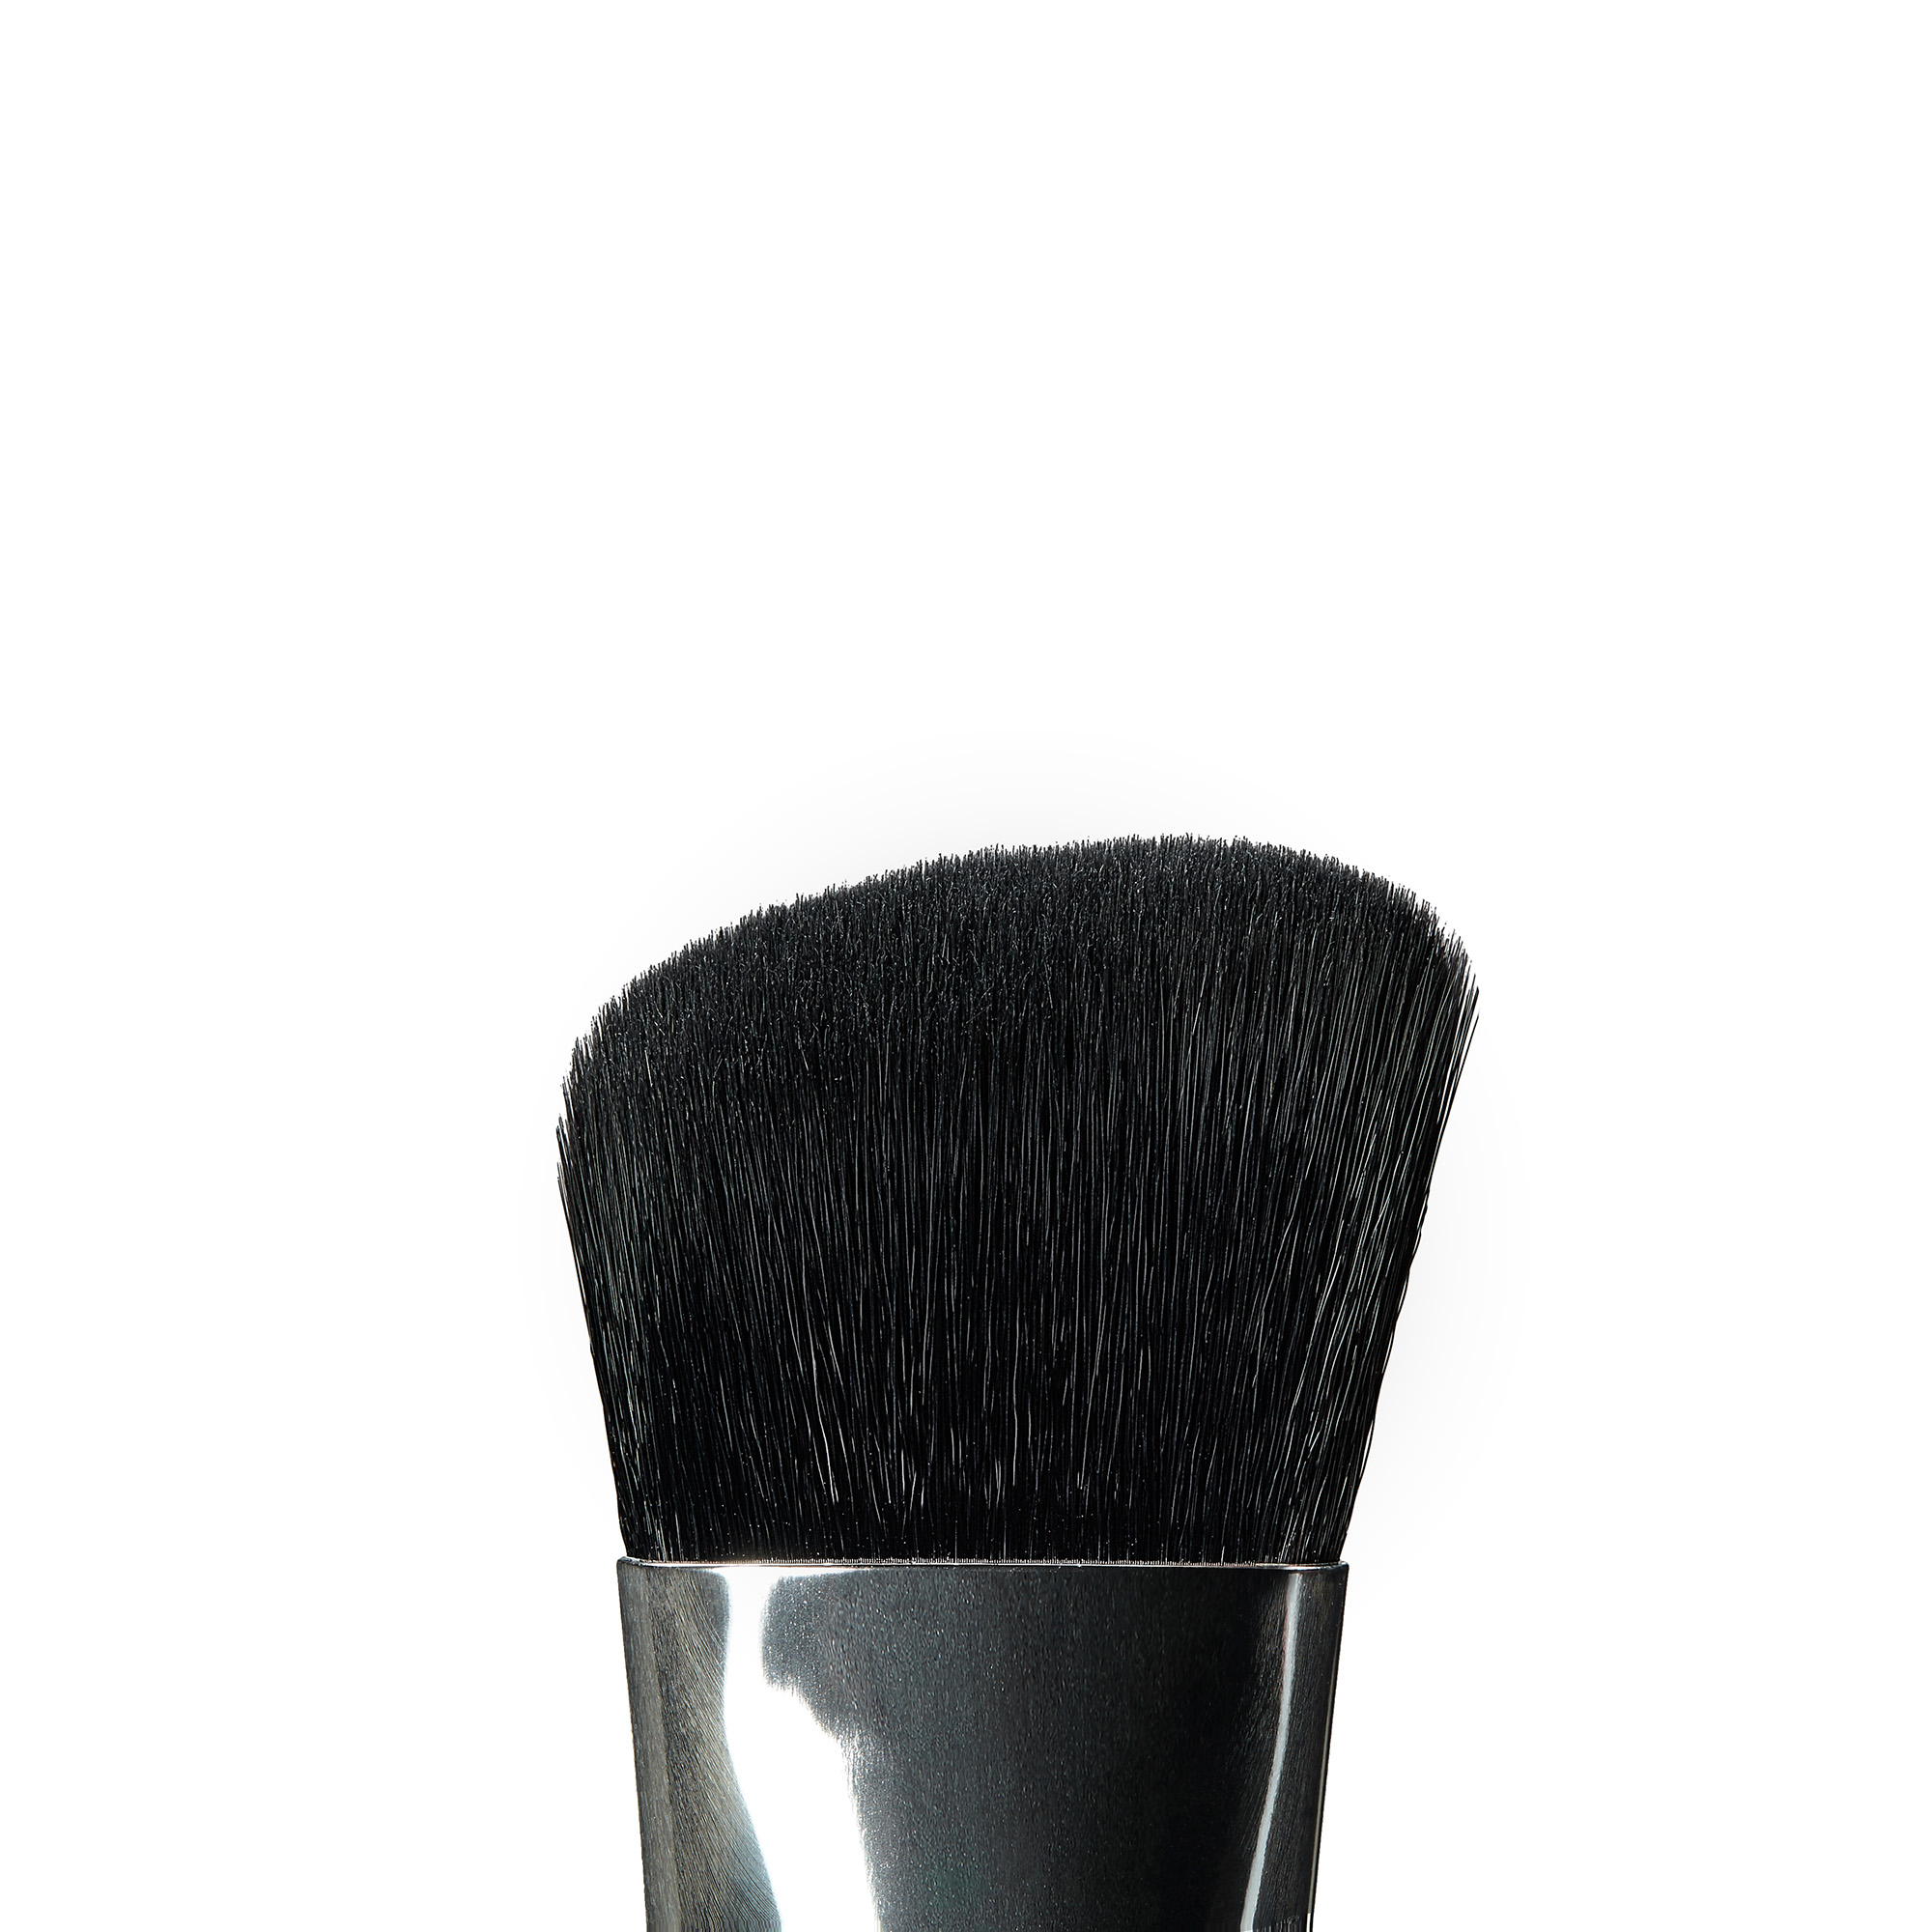 Pro Brush- A18 Angle Chiseler Brush